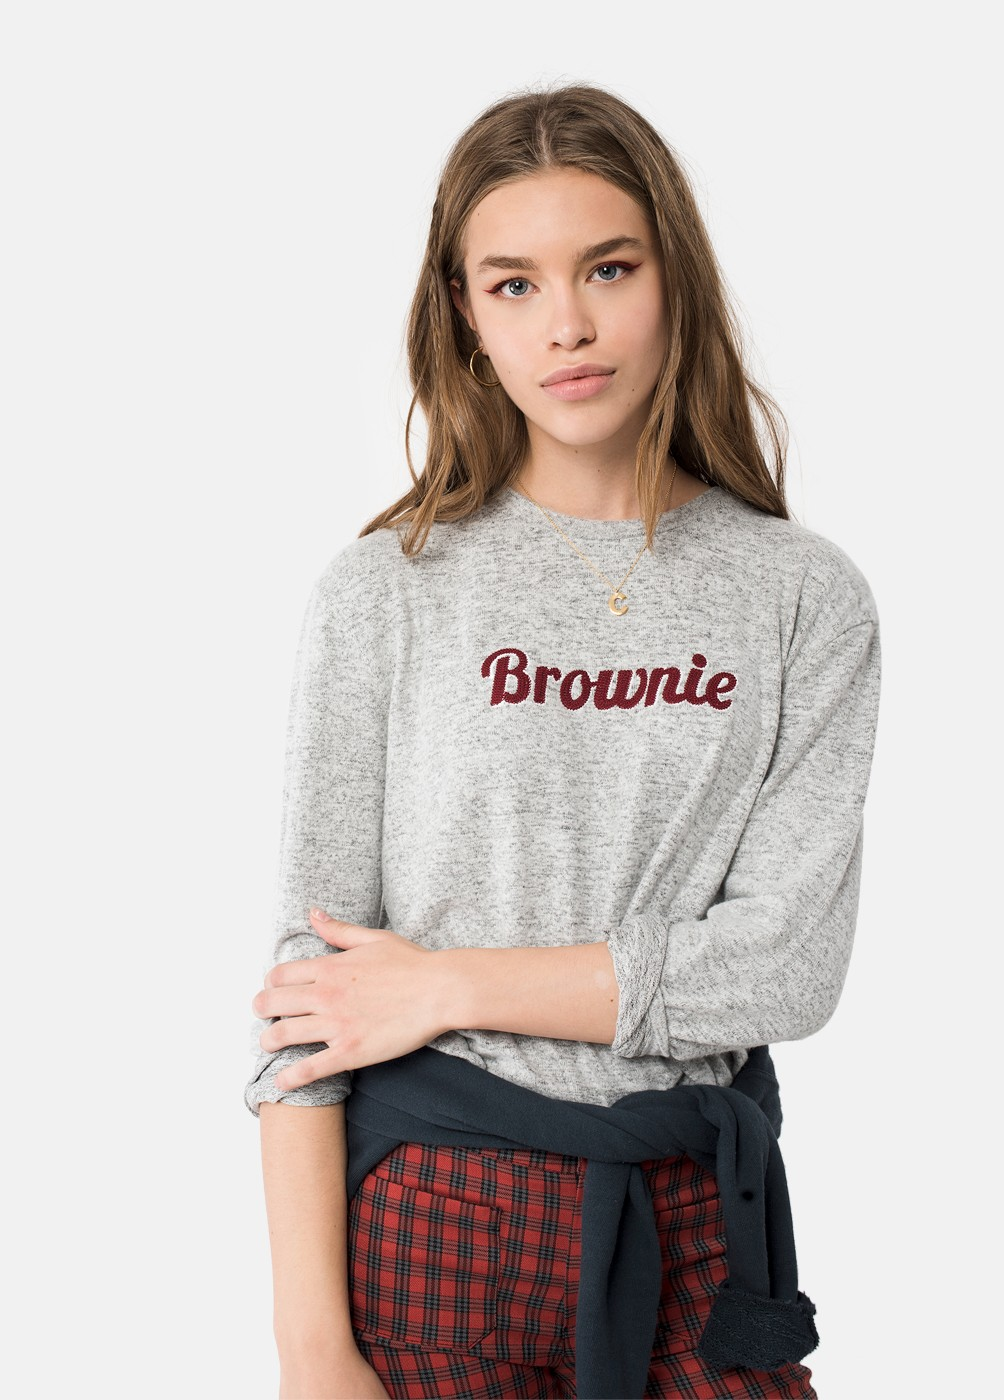 CAMISETA LOGO BROWNIE